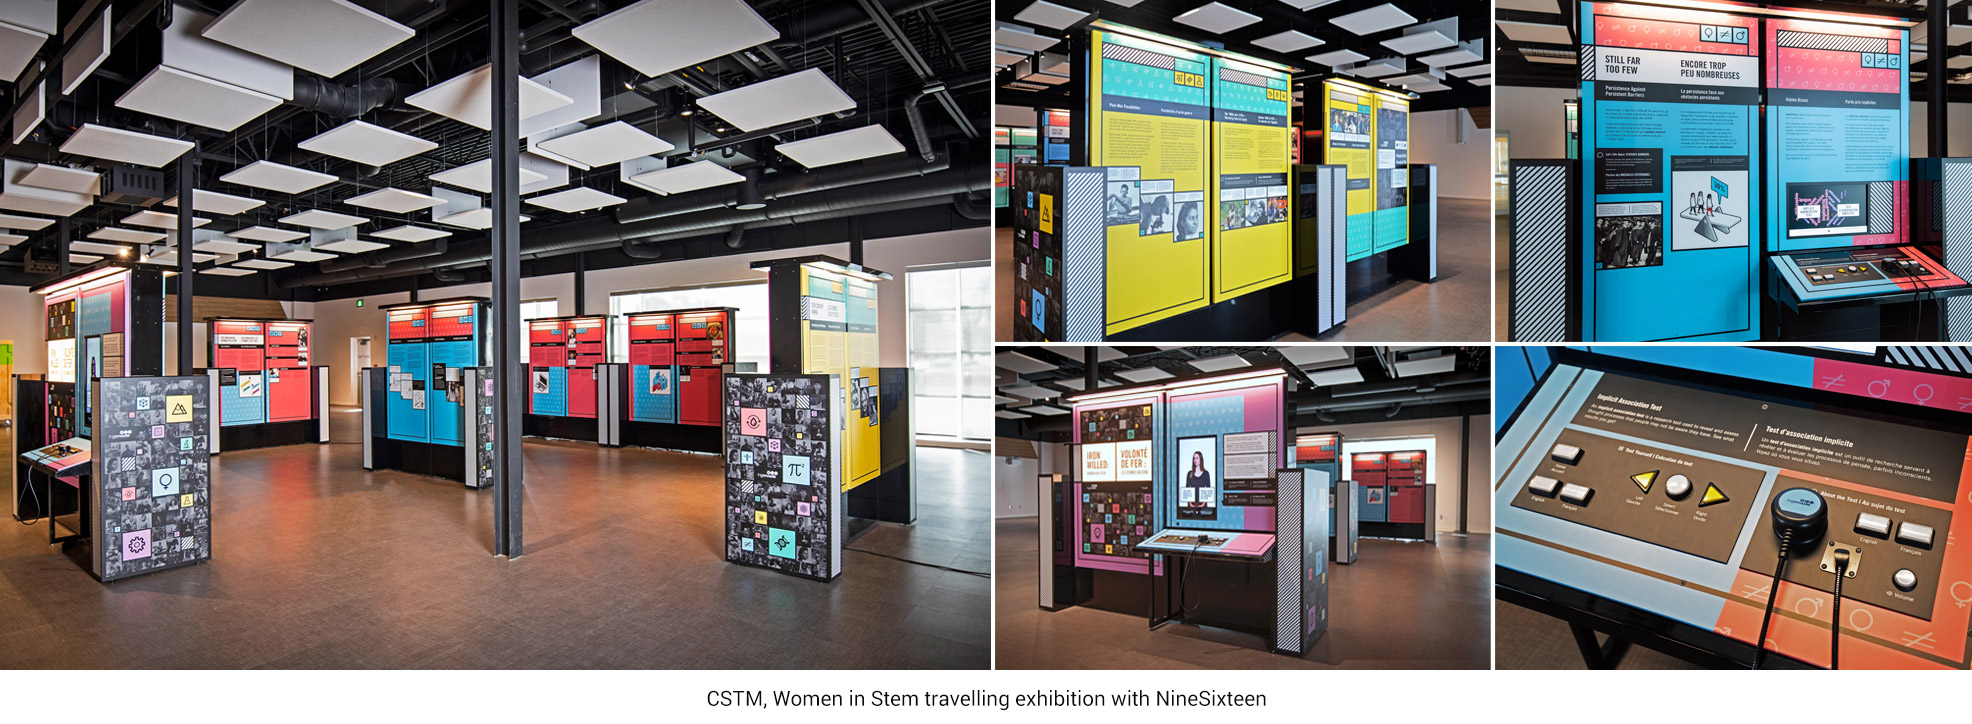 CSTM, Women in Stem travelling exhibition with NineSixteen